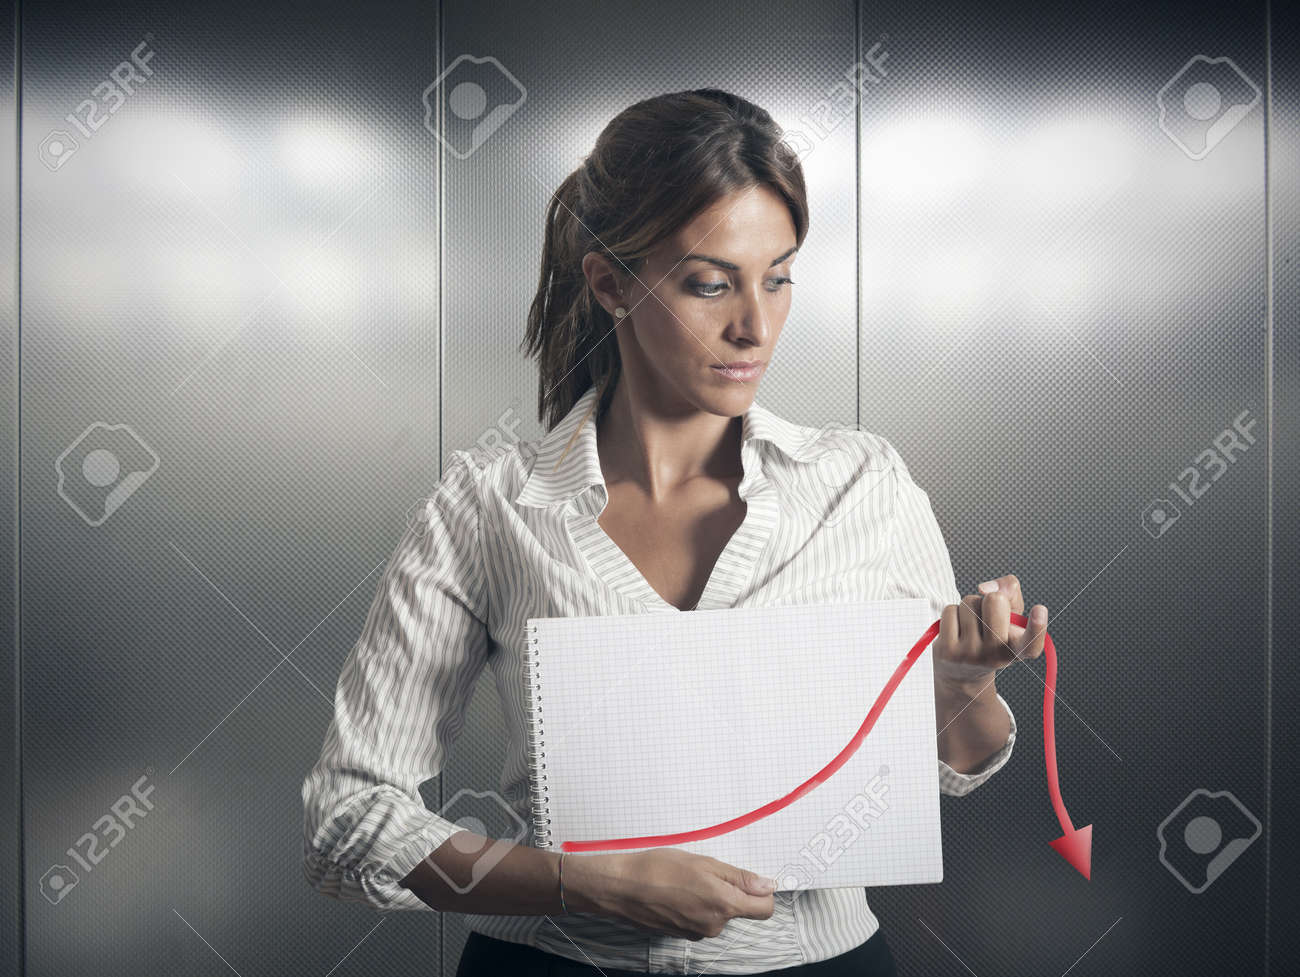 Concept of crisis and failure in business Stock Photo - 16645293